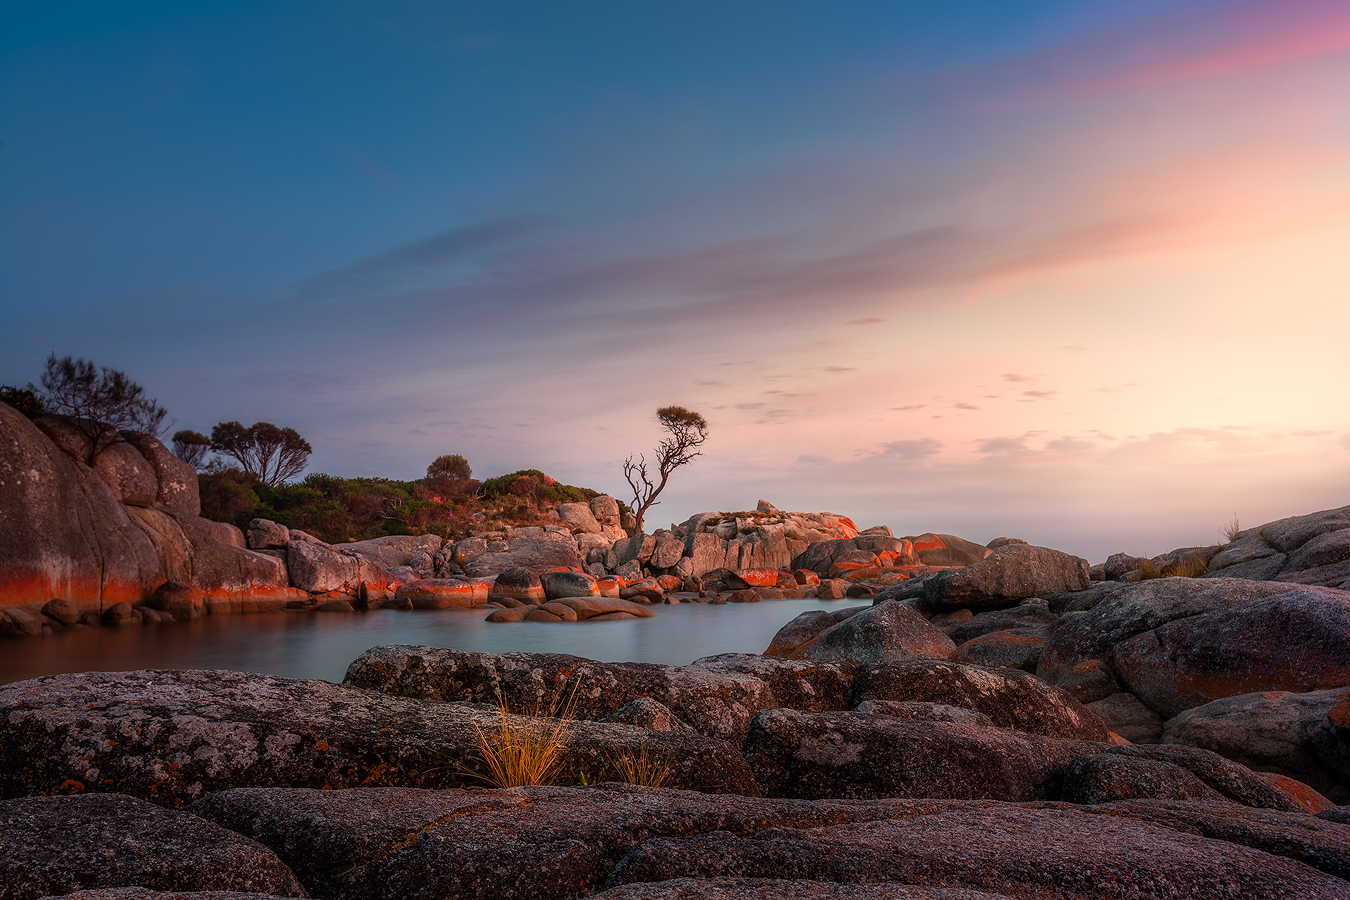 Tasmania Landscape Photography Tour - Binalong Bay Sunrise | Holiday with We Are Raw Photography Tours